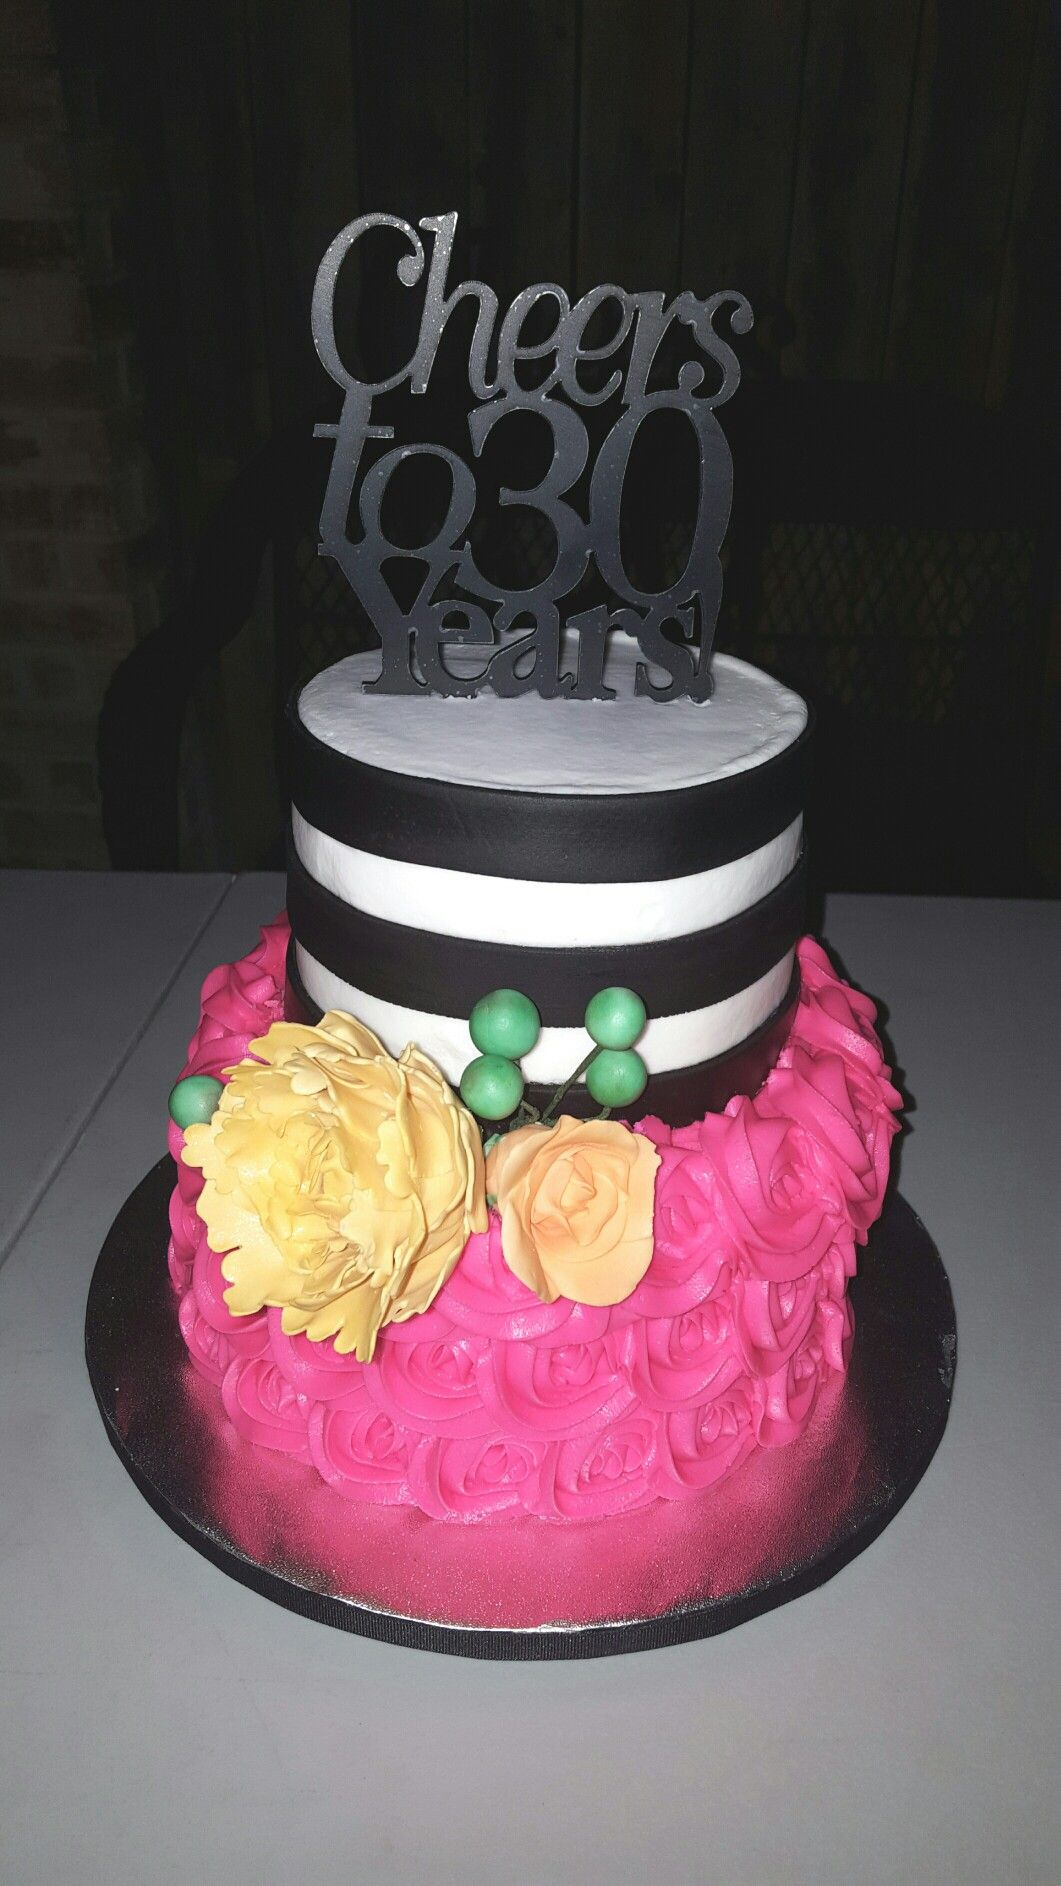 30th birthday gifts for her ireland